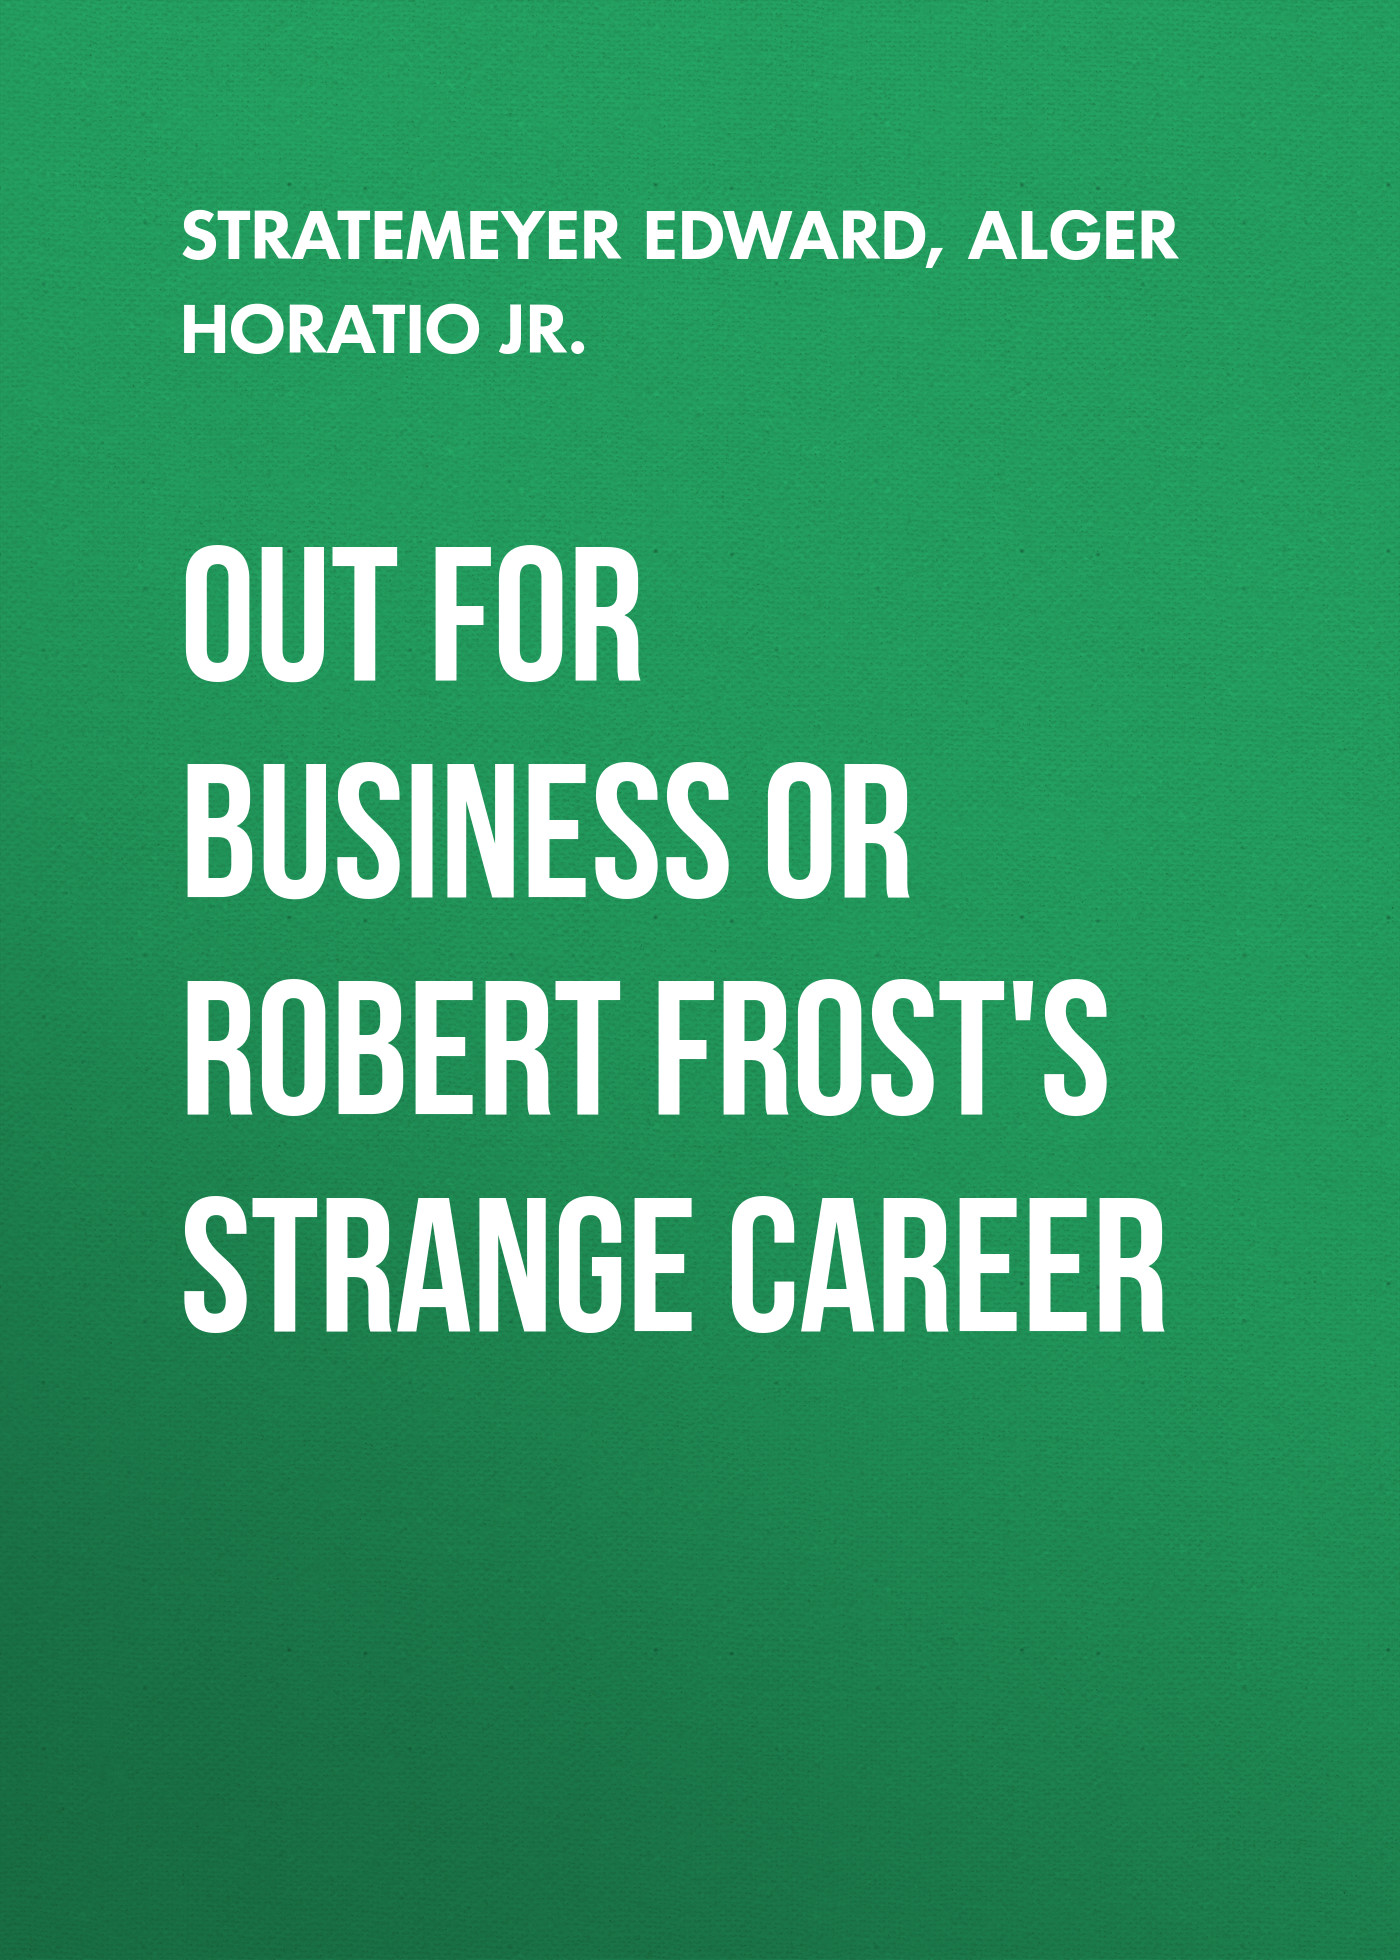 лучшая цена Stratemeyer Edward Out For Business or Robert Frost's Strange Career